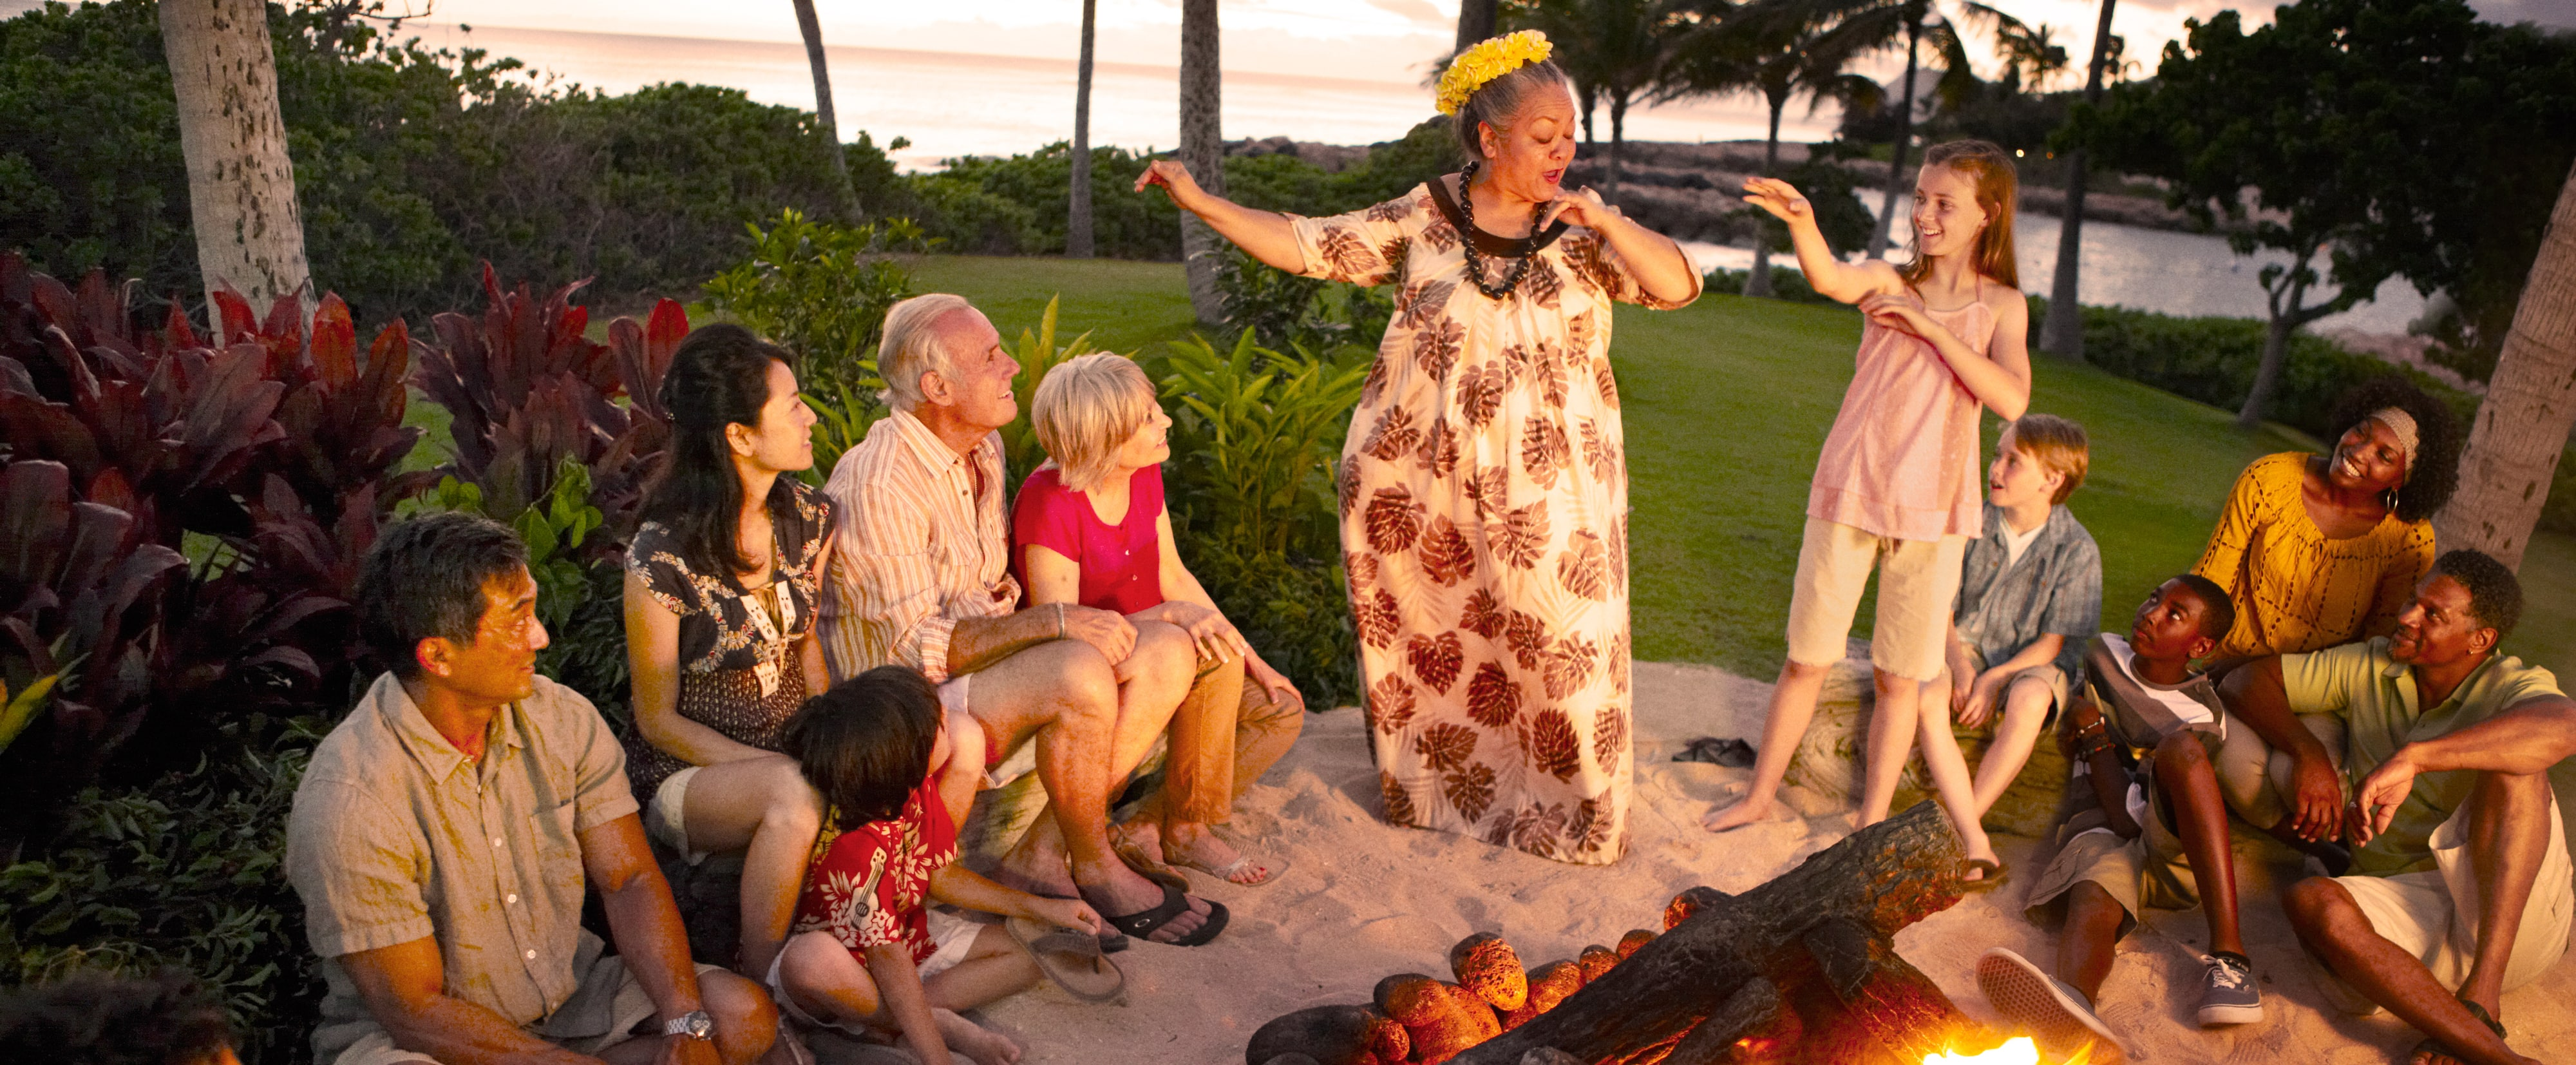 A woman in Hawaiian garb teaches a girl hula hand motions while the rest of the group watches by the fire